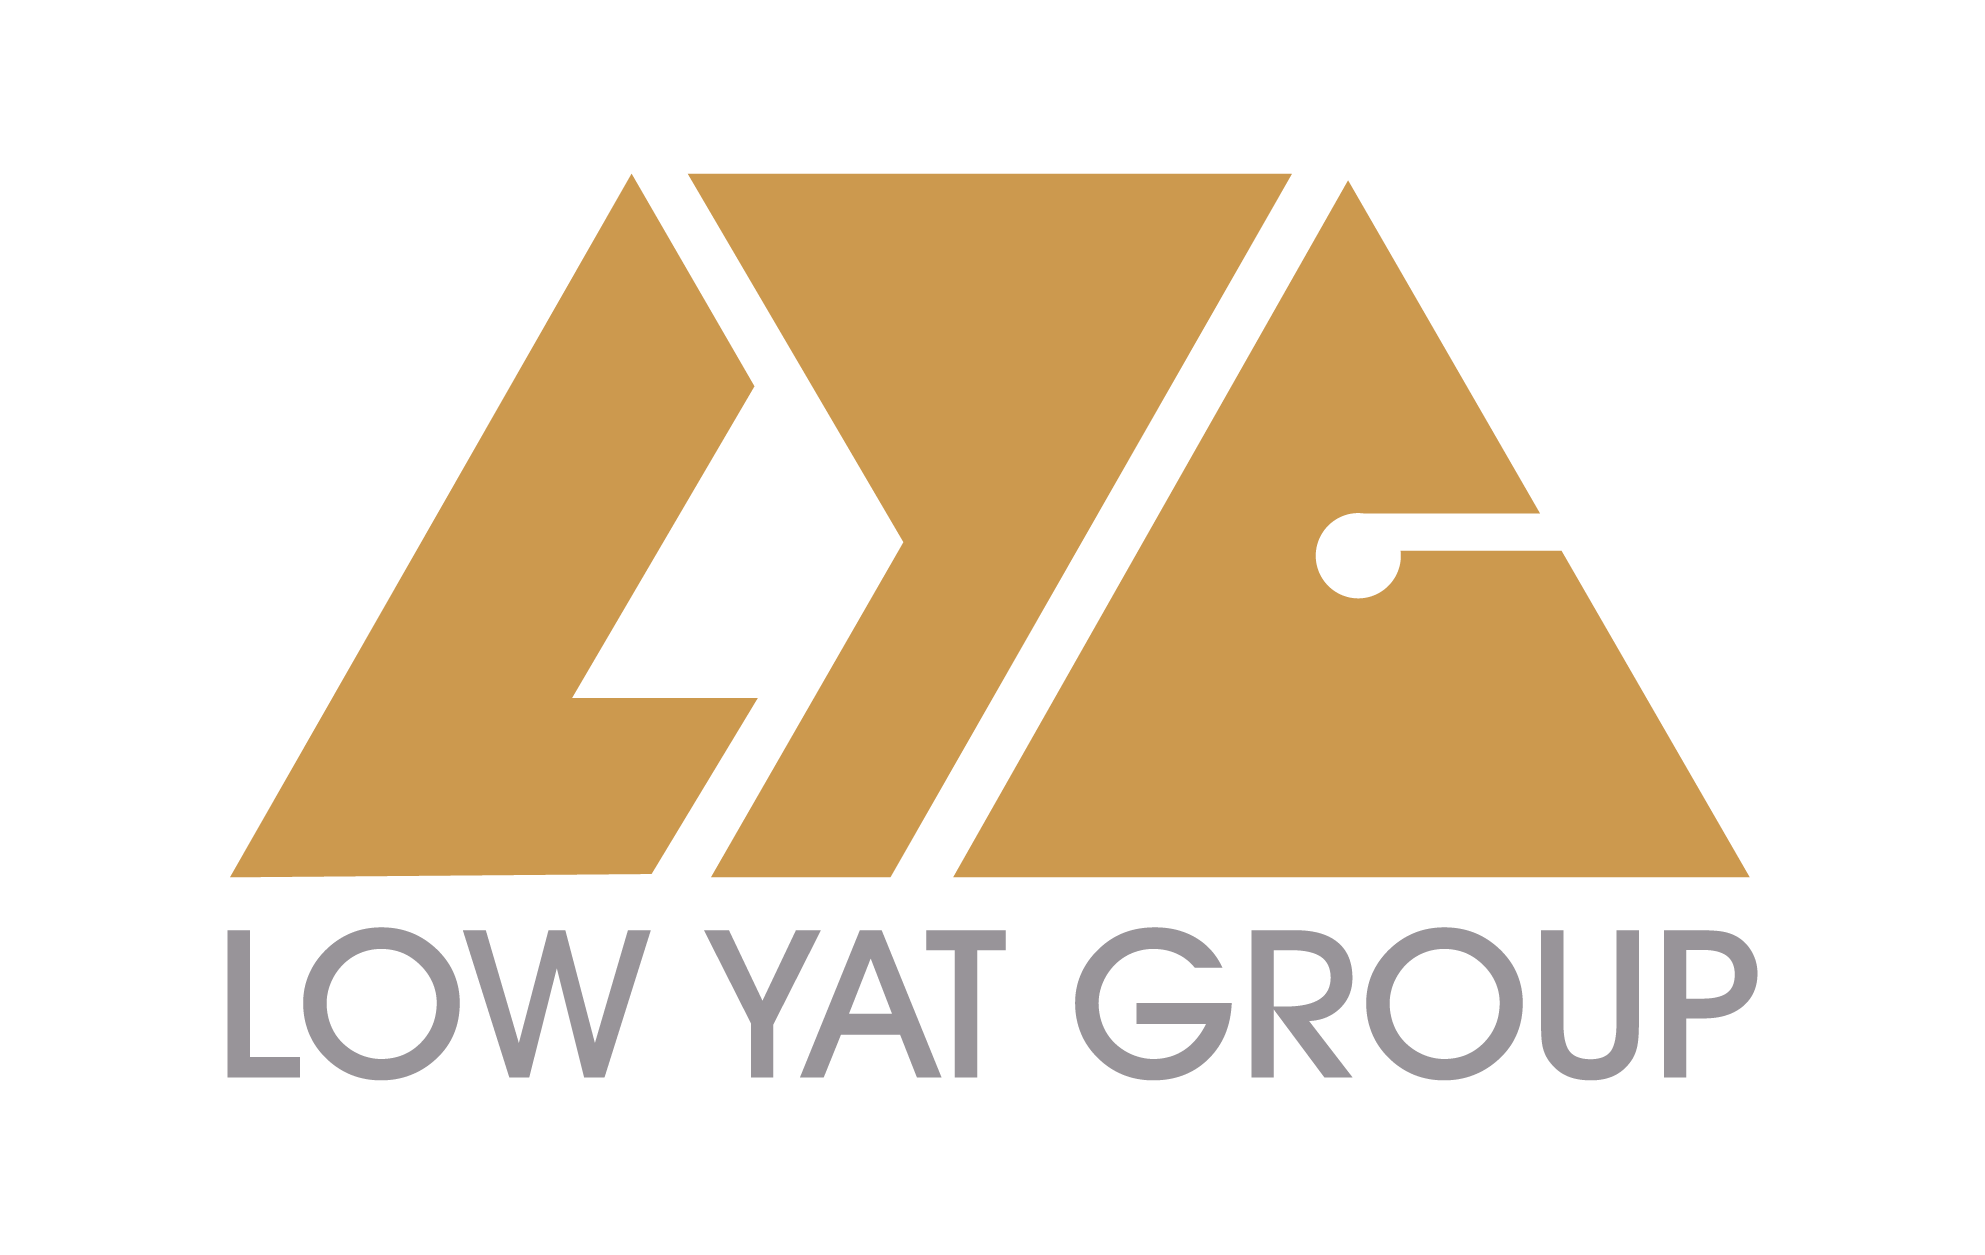 Low Yat Group